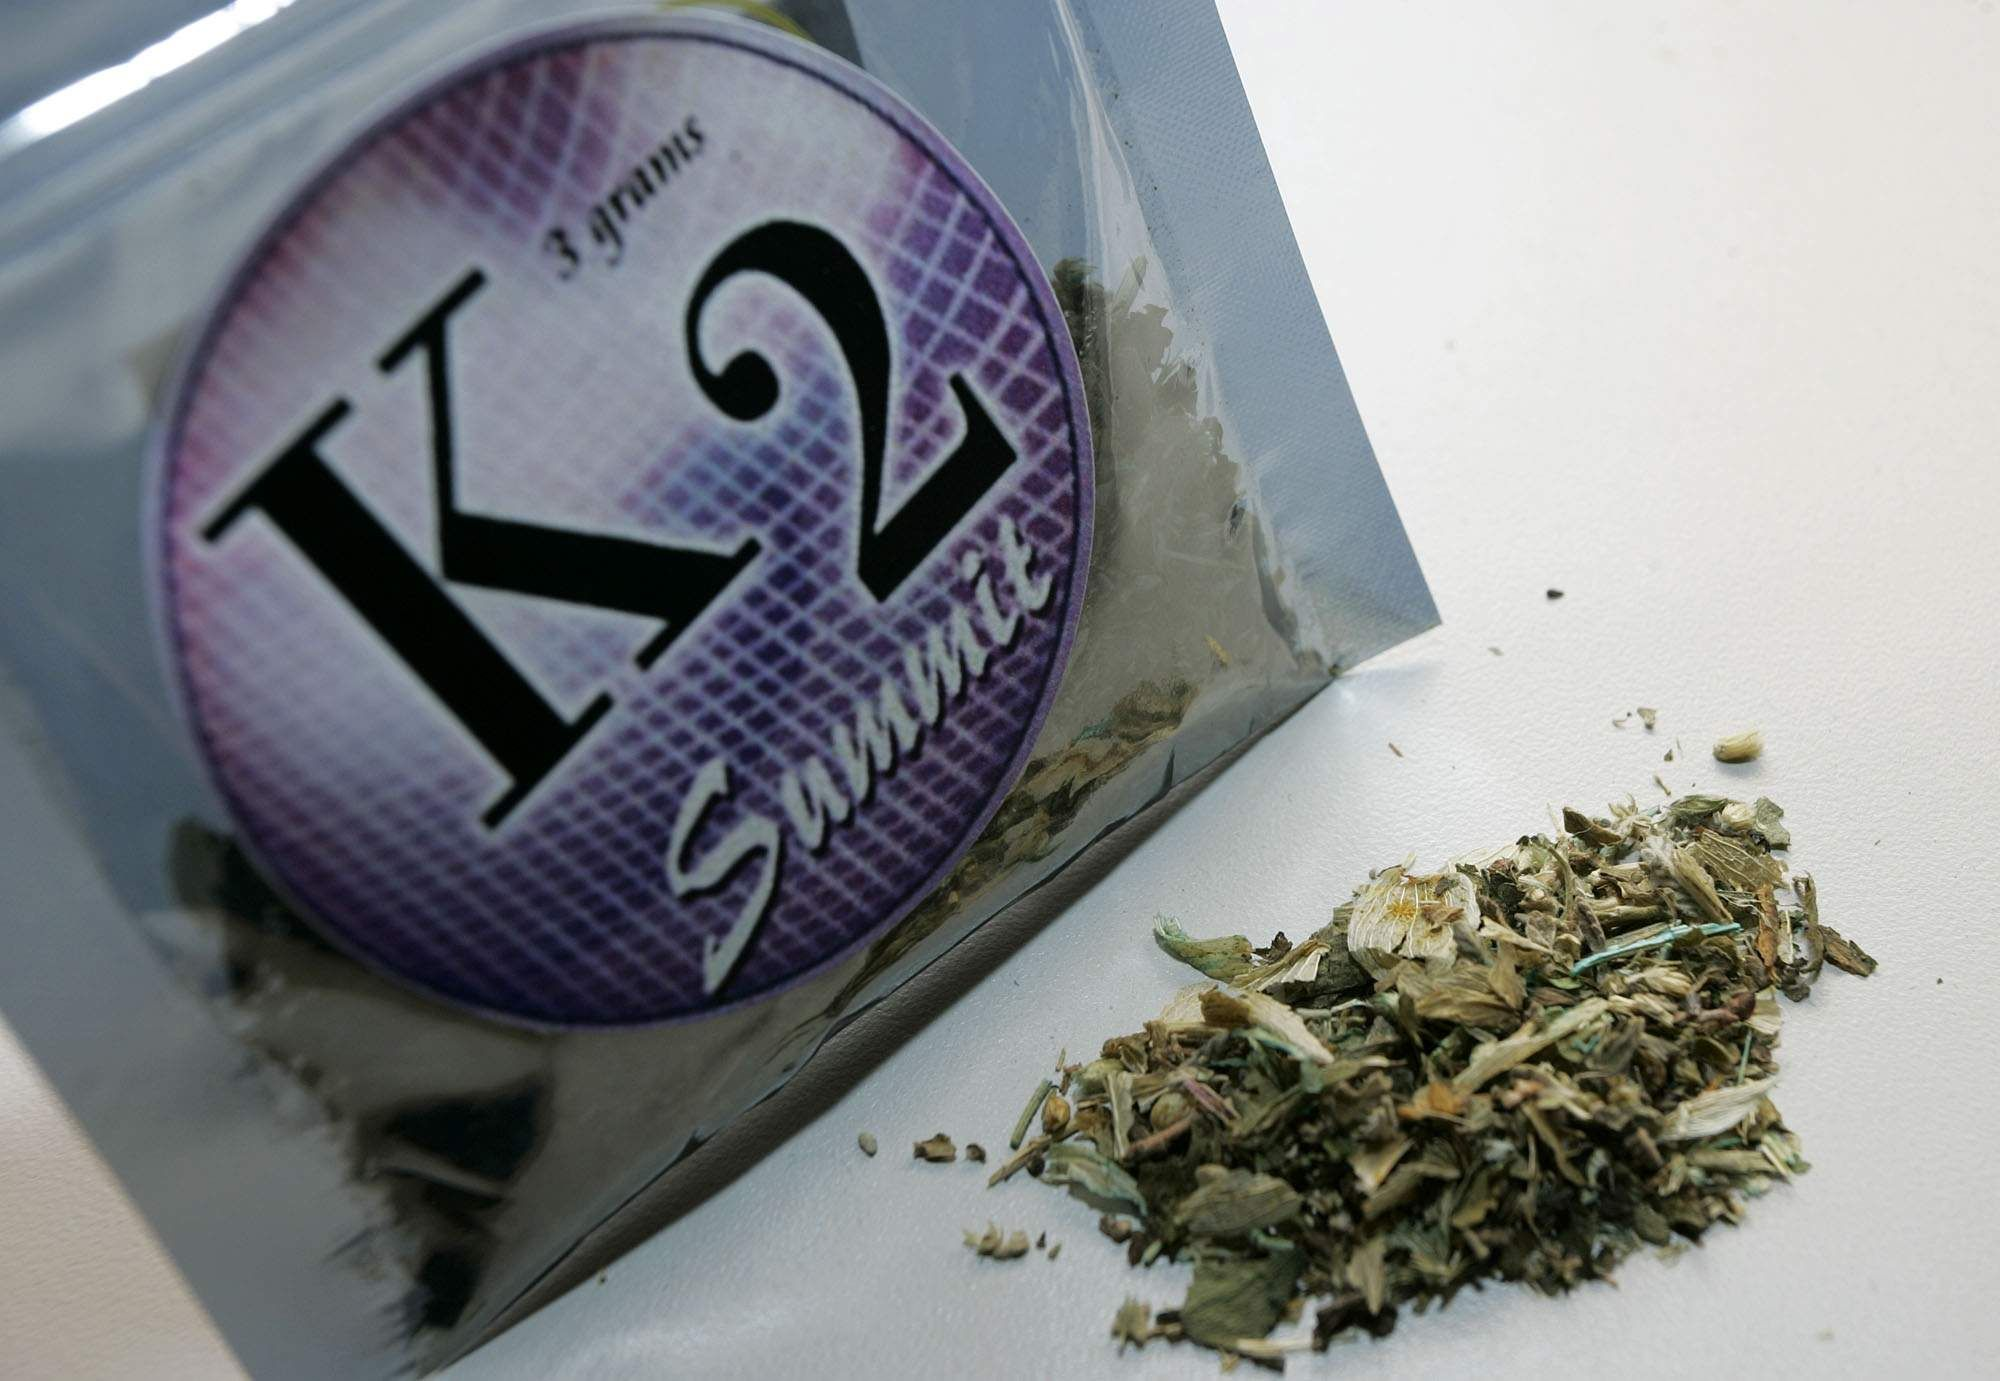 Synthetic Marijuana - Spice or K2